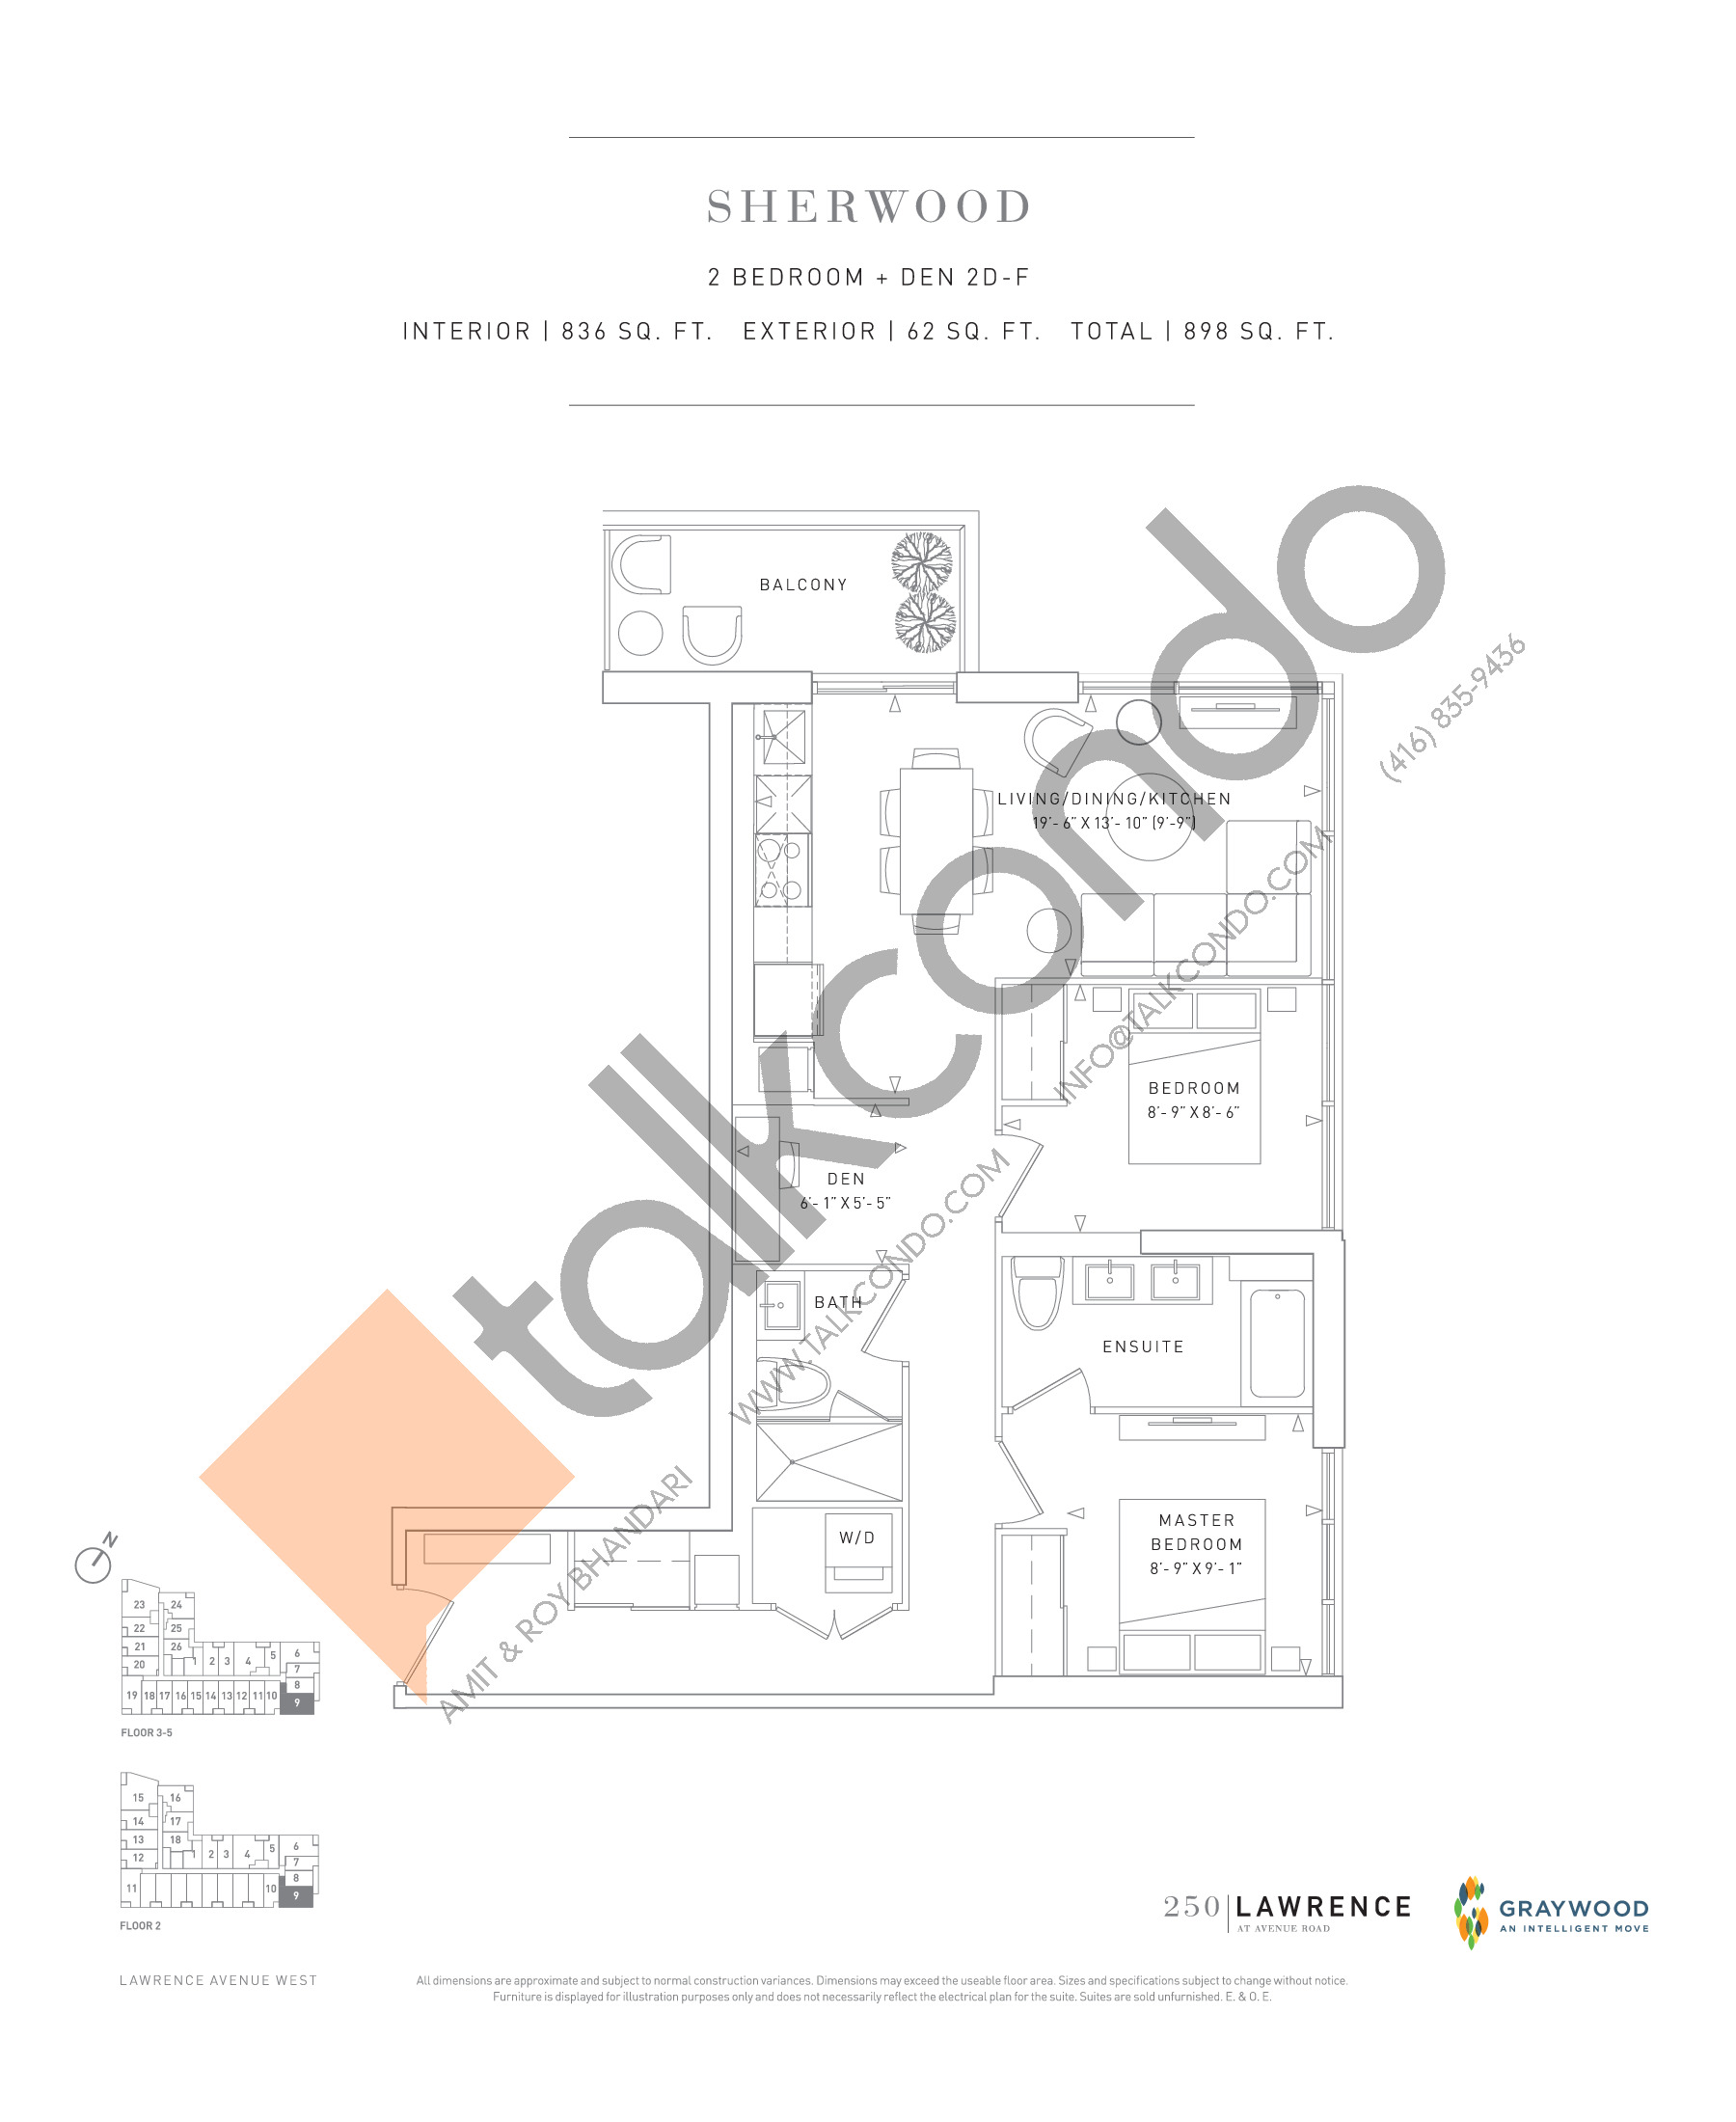 Sherwood Floor Plan at 250 Lawrence Avenue West Condos - 836 sq.ft